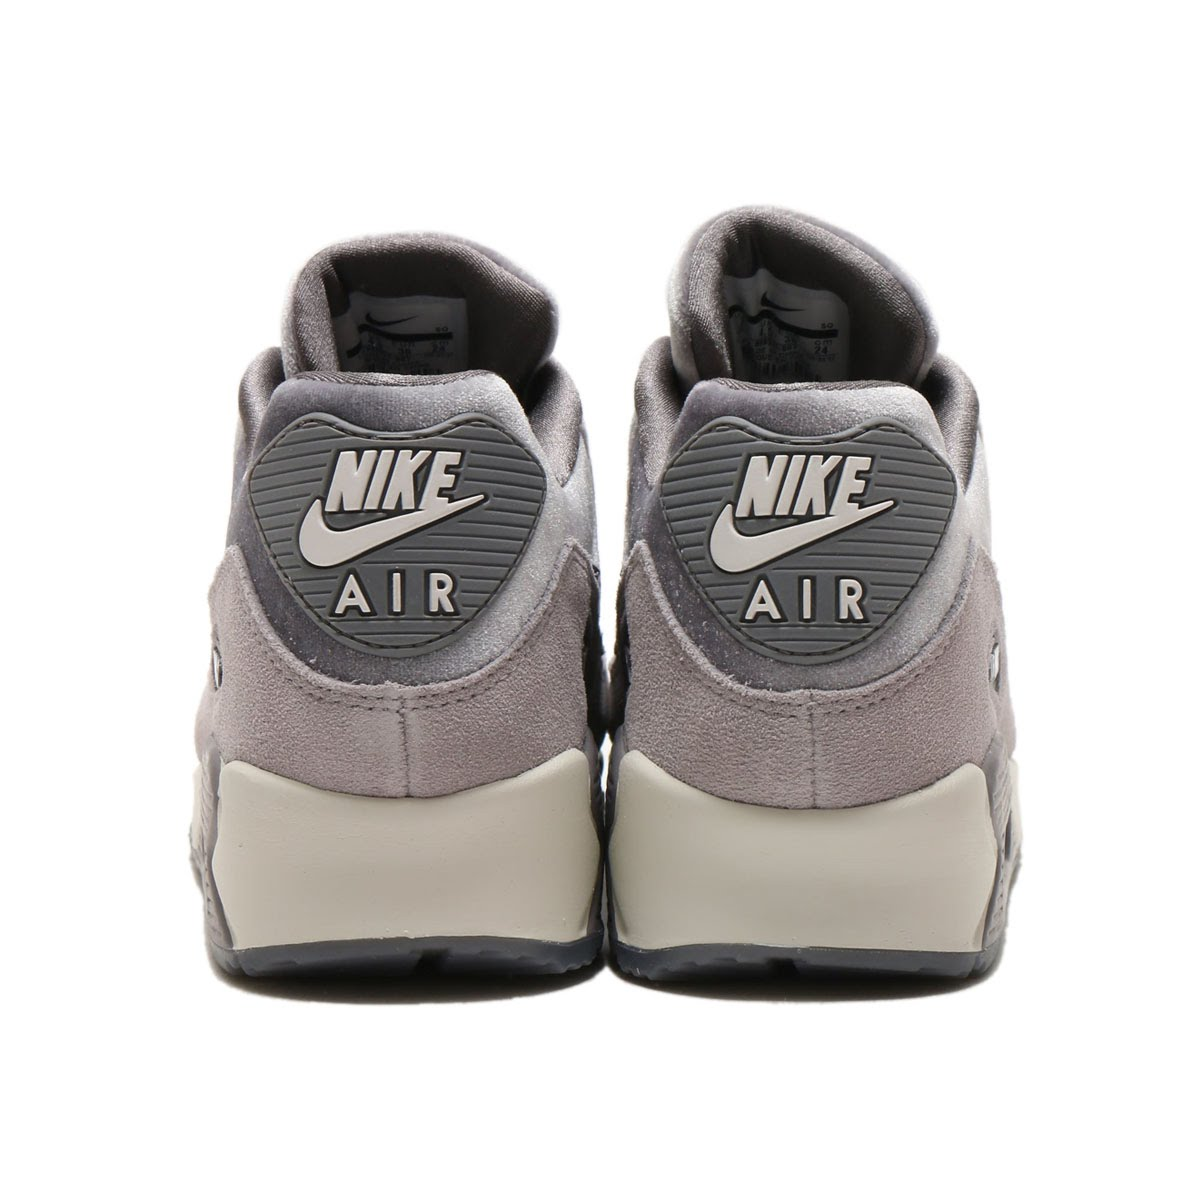 finest selection 214e8 b85bc NIKE WMNS AIR MAX 90 LX (Nike women Air Max 90 LX) (GUNSMOKE GUNSMOKE-ATMOSPHERE  GREY) 18SP-S